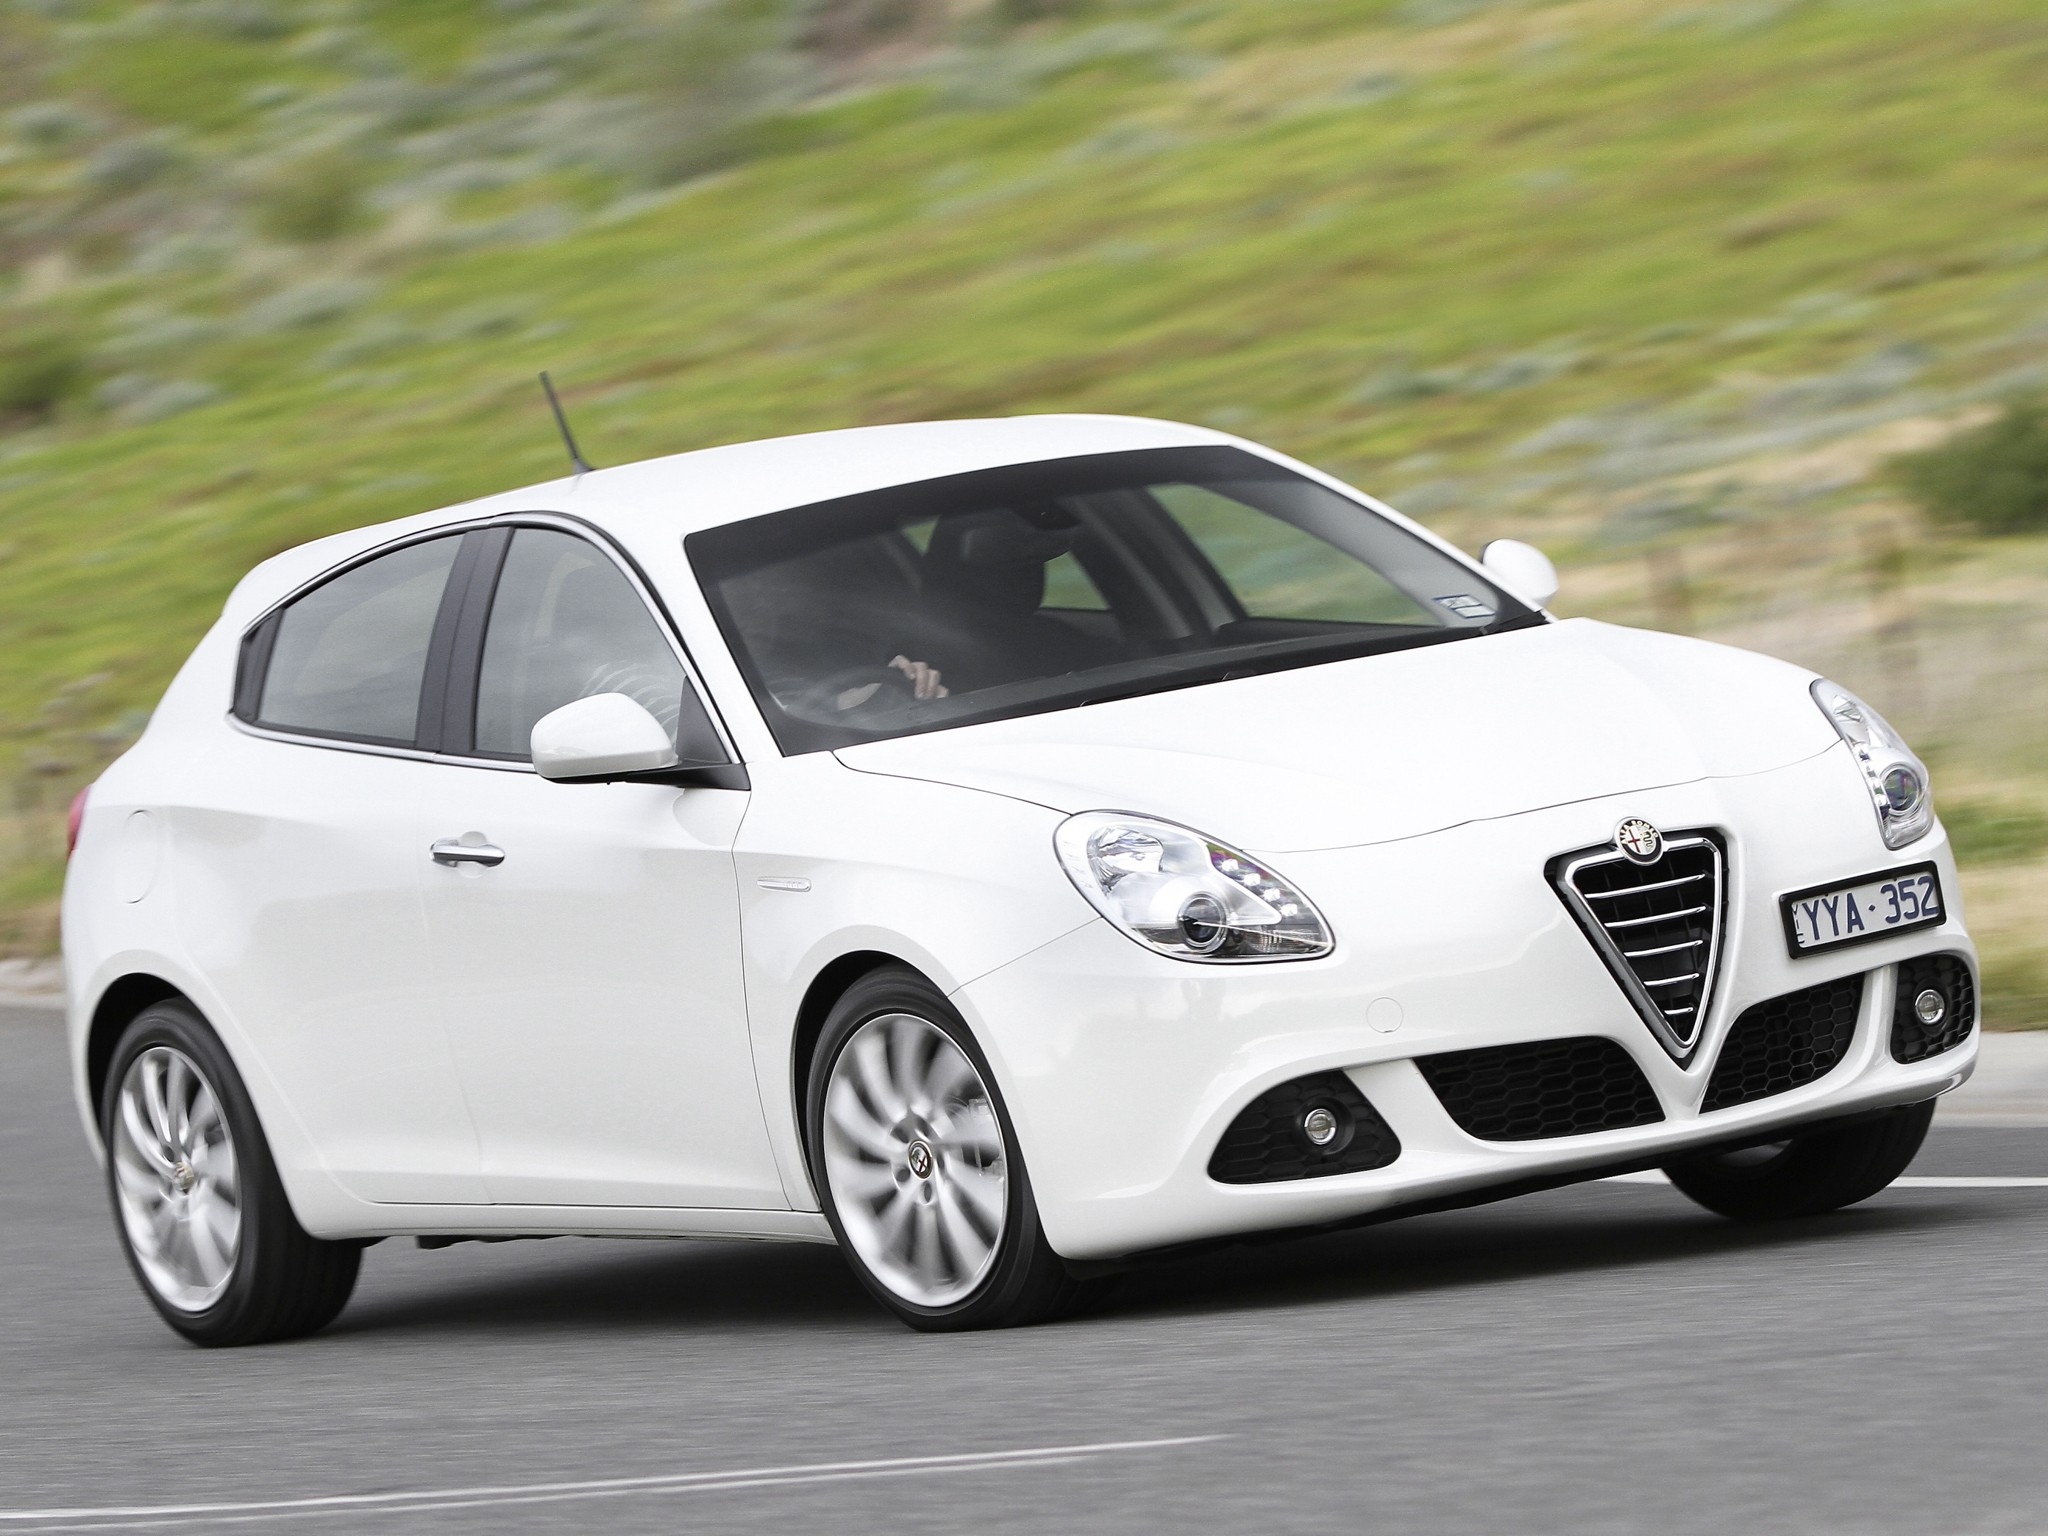 alfa romeo giulietta specs 2010 2011 2012 2013 2014 2015 2016 autoevolution. Black Bedroom Furniture Sets. Home Design Ideas